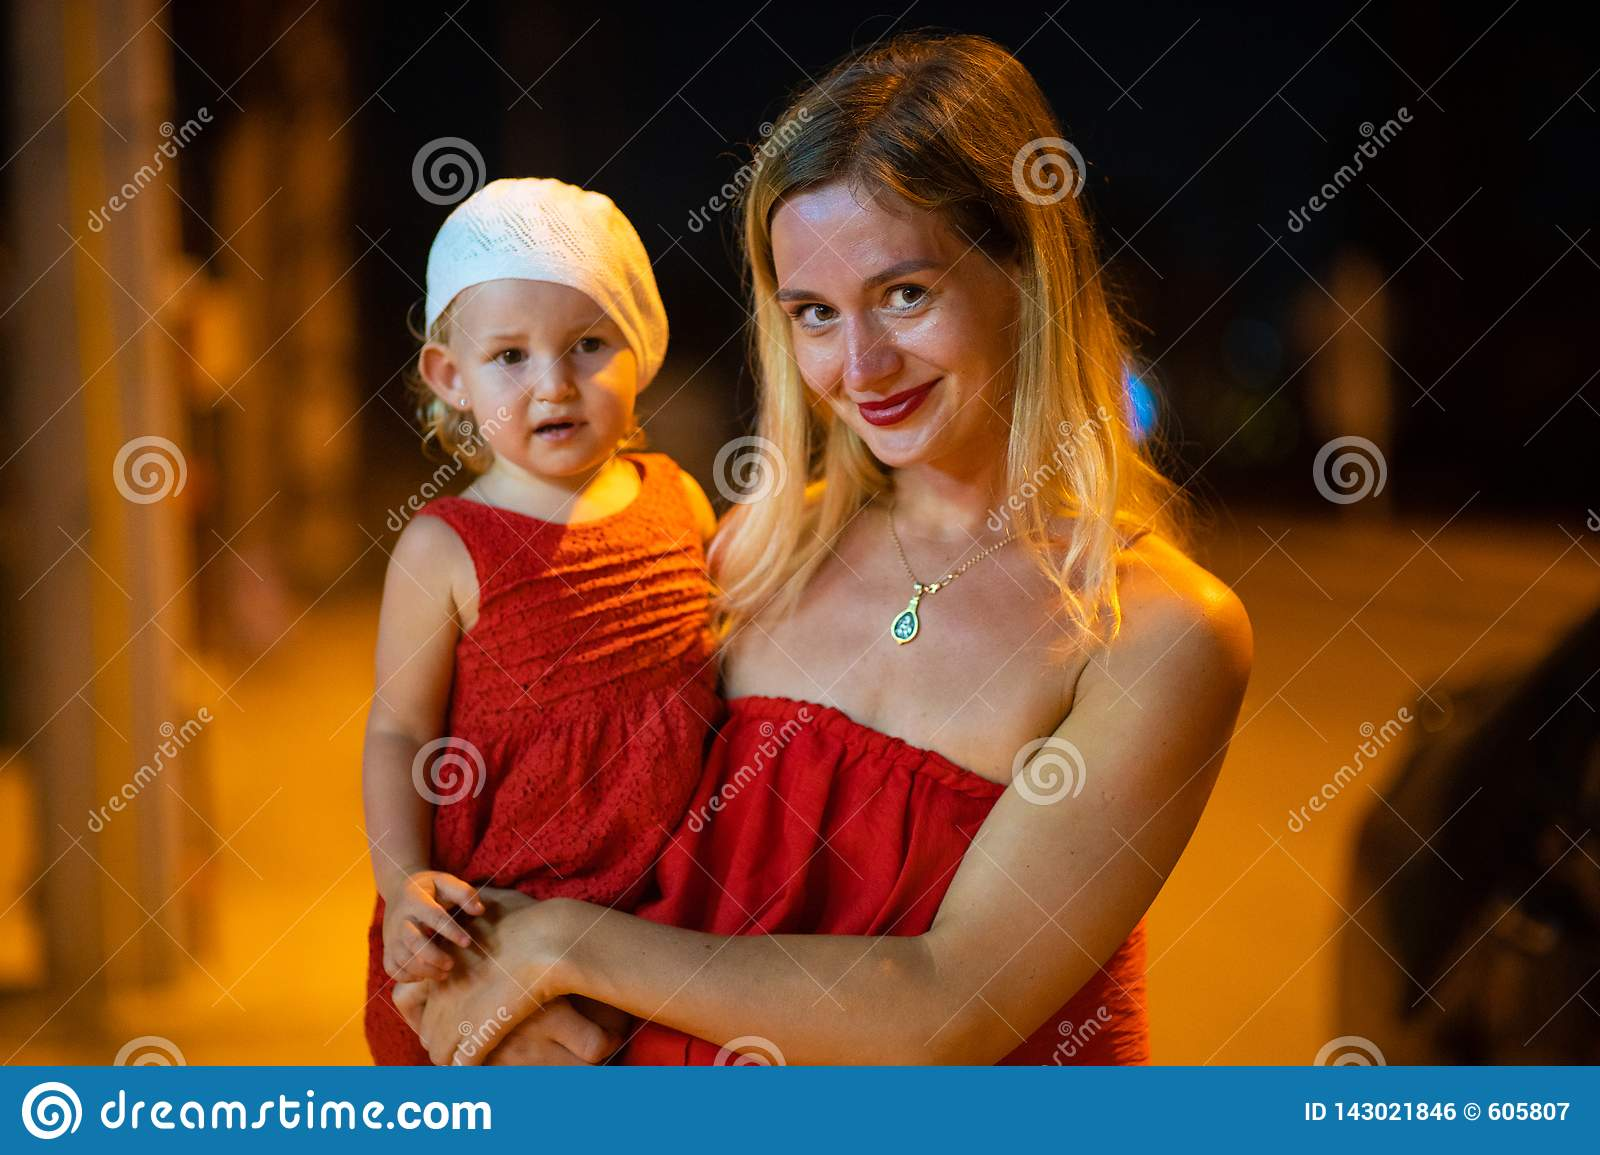 Mother holds daughter in her arms, mother with daughter is dressed in red dresses, child in white beret, at night.